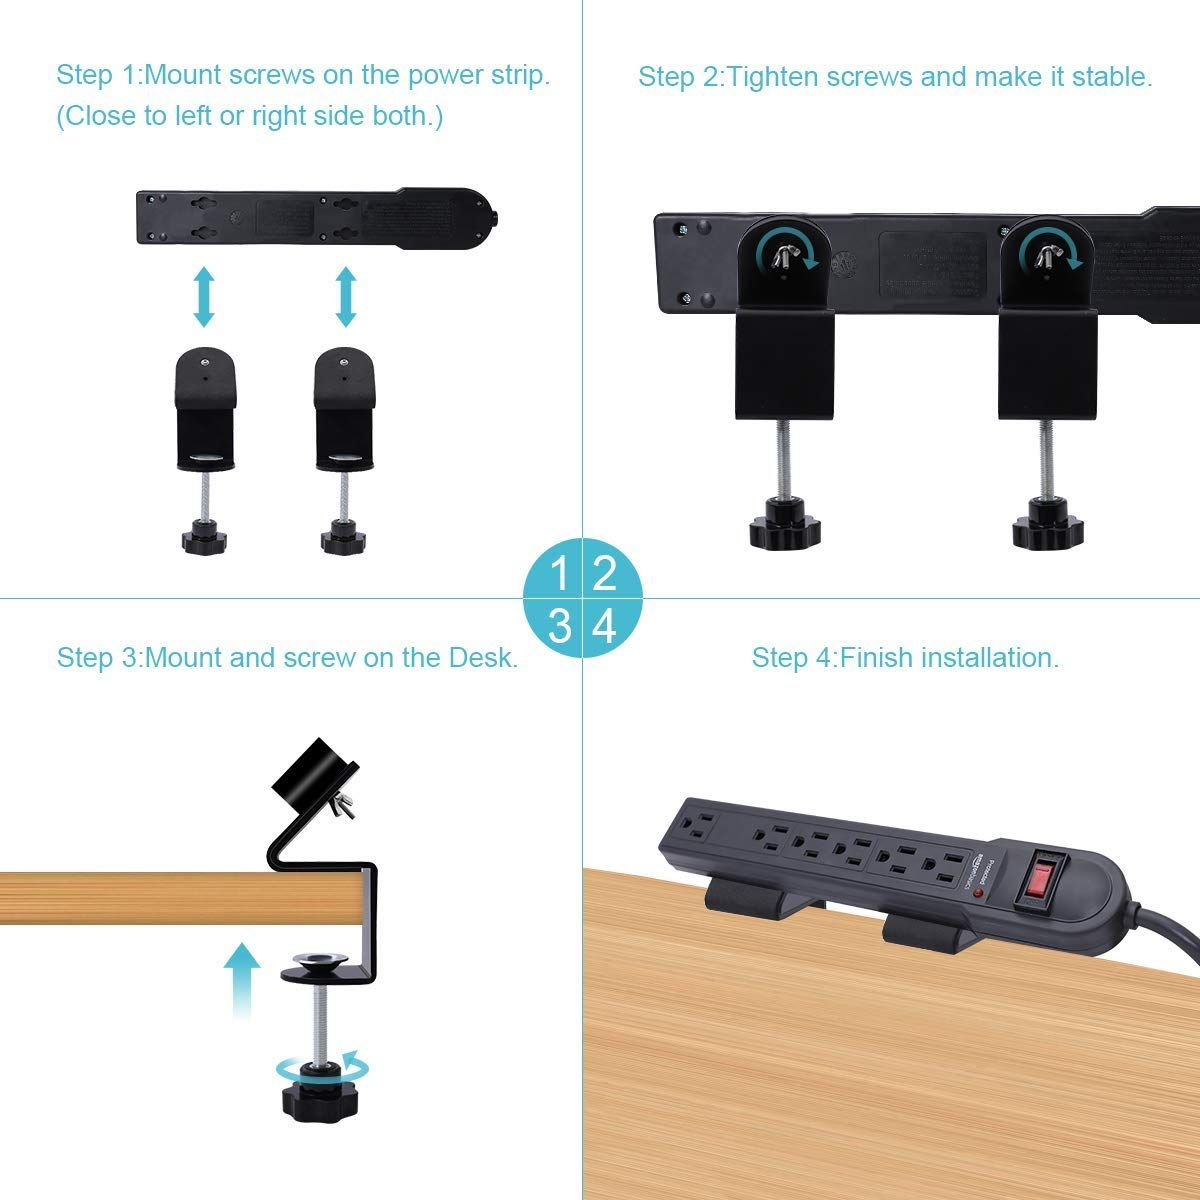 Easy To Install And Save Your Space Lanmu Power Strip Desk Mount